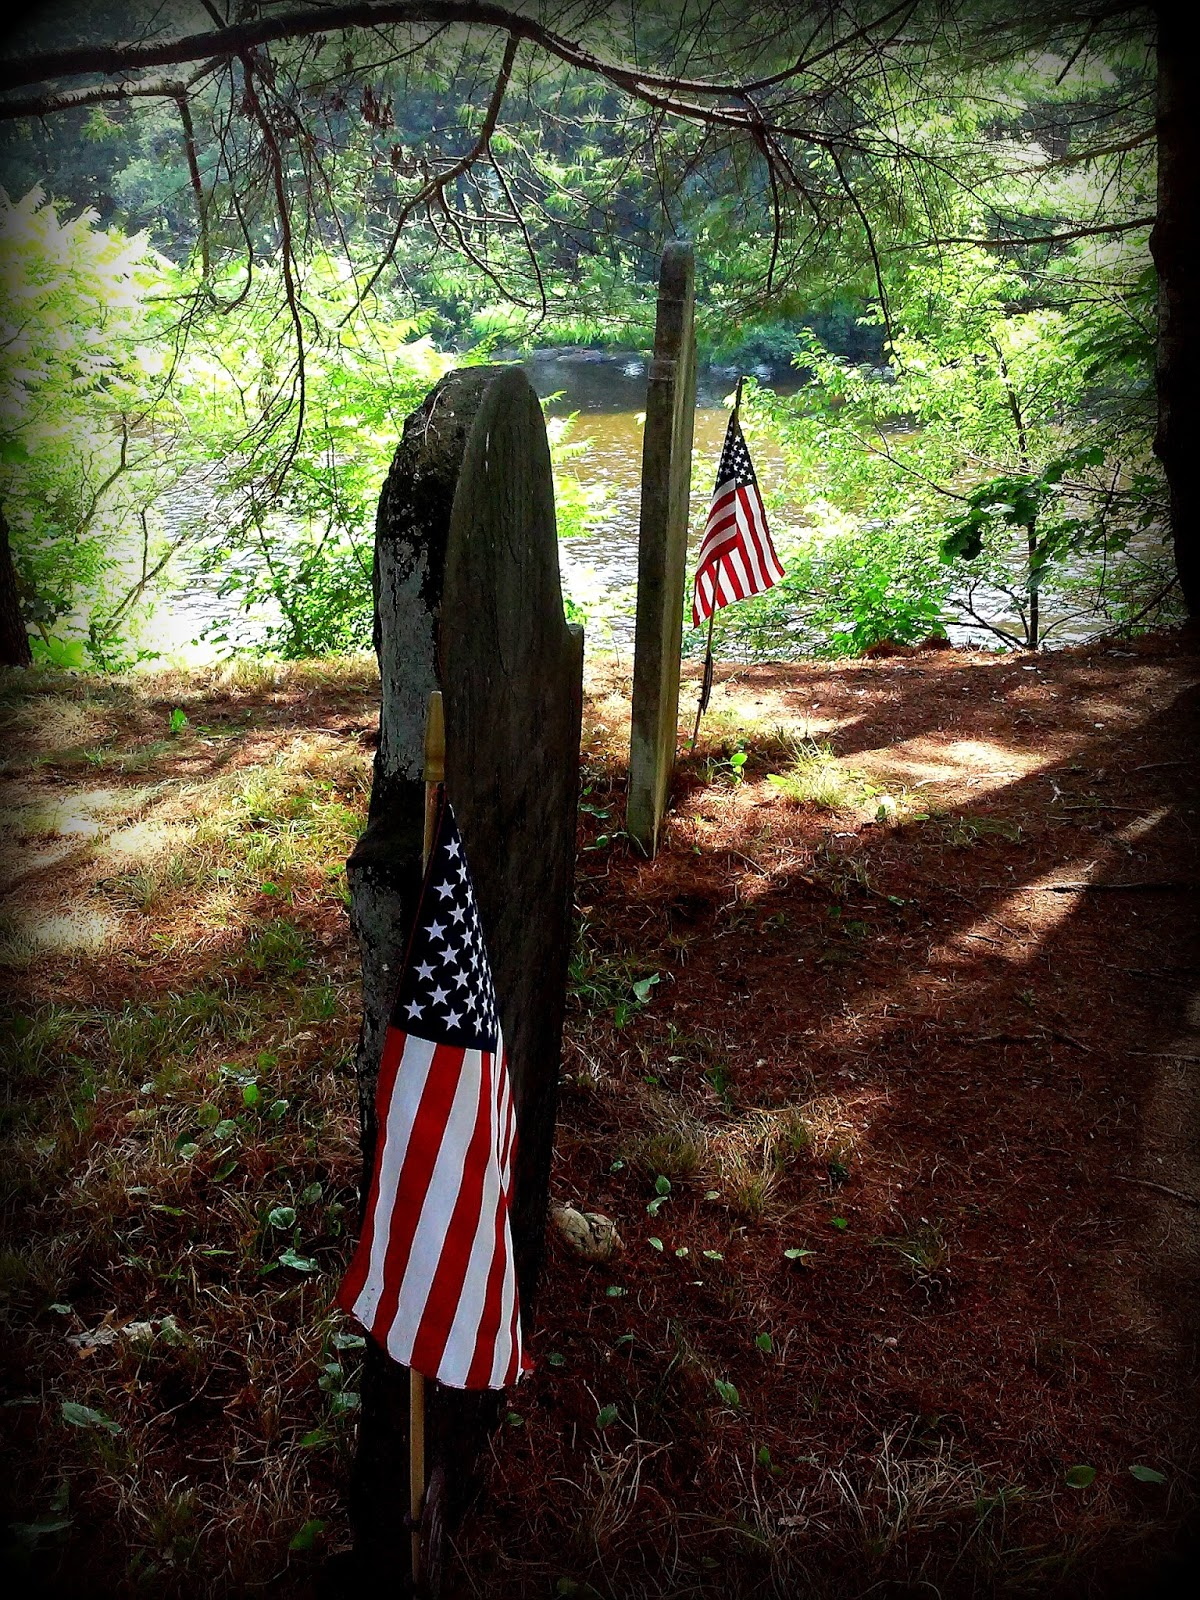 cemetery, charlemont, massachusetts, shadow, flag, grave stones